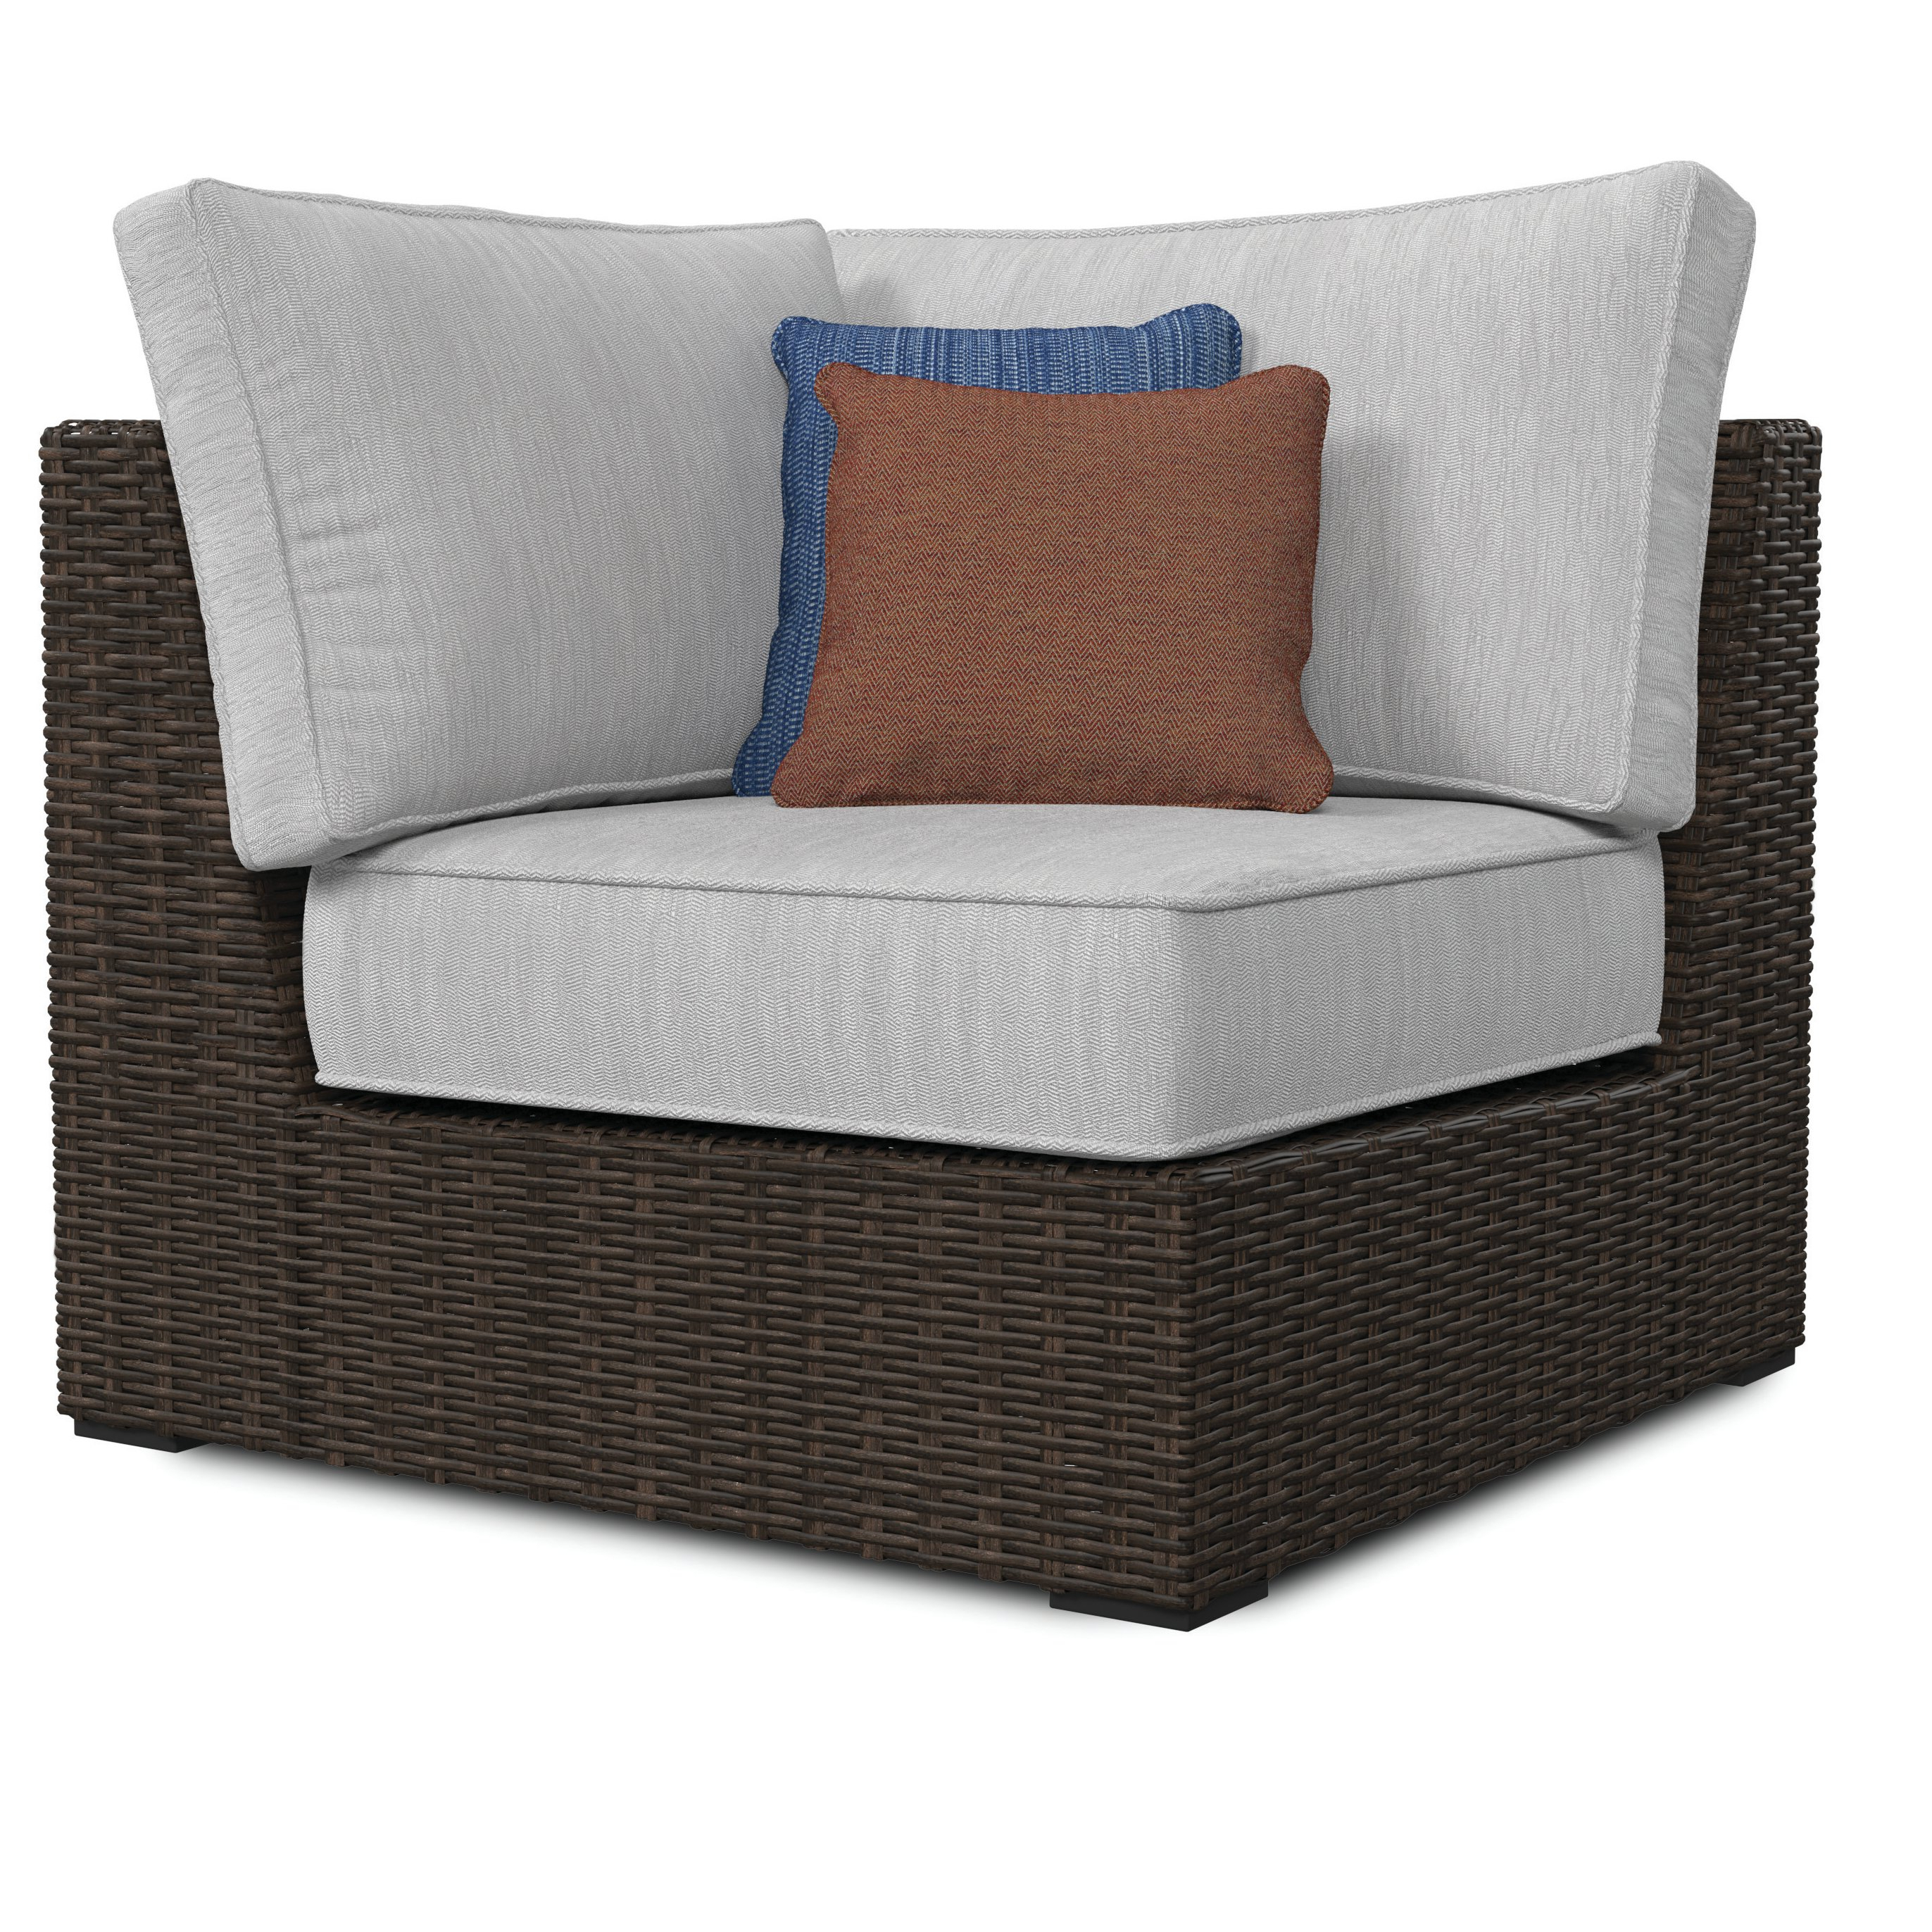 2019 Oreland Patio Sofas With Cushions For Oreland Patio Chair With Cushions (View 1 of 20)